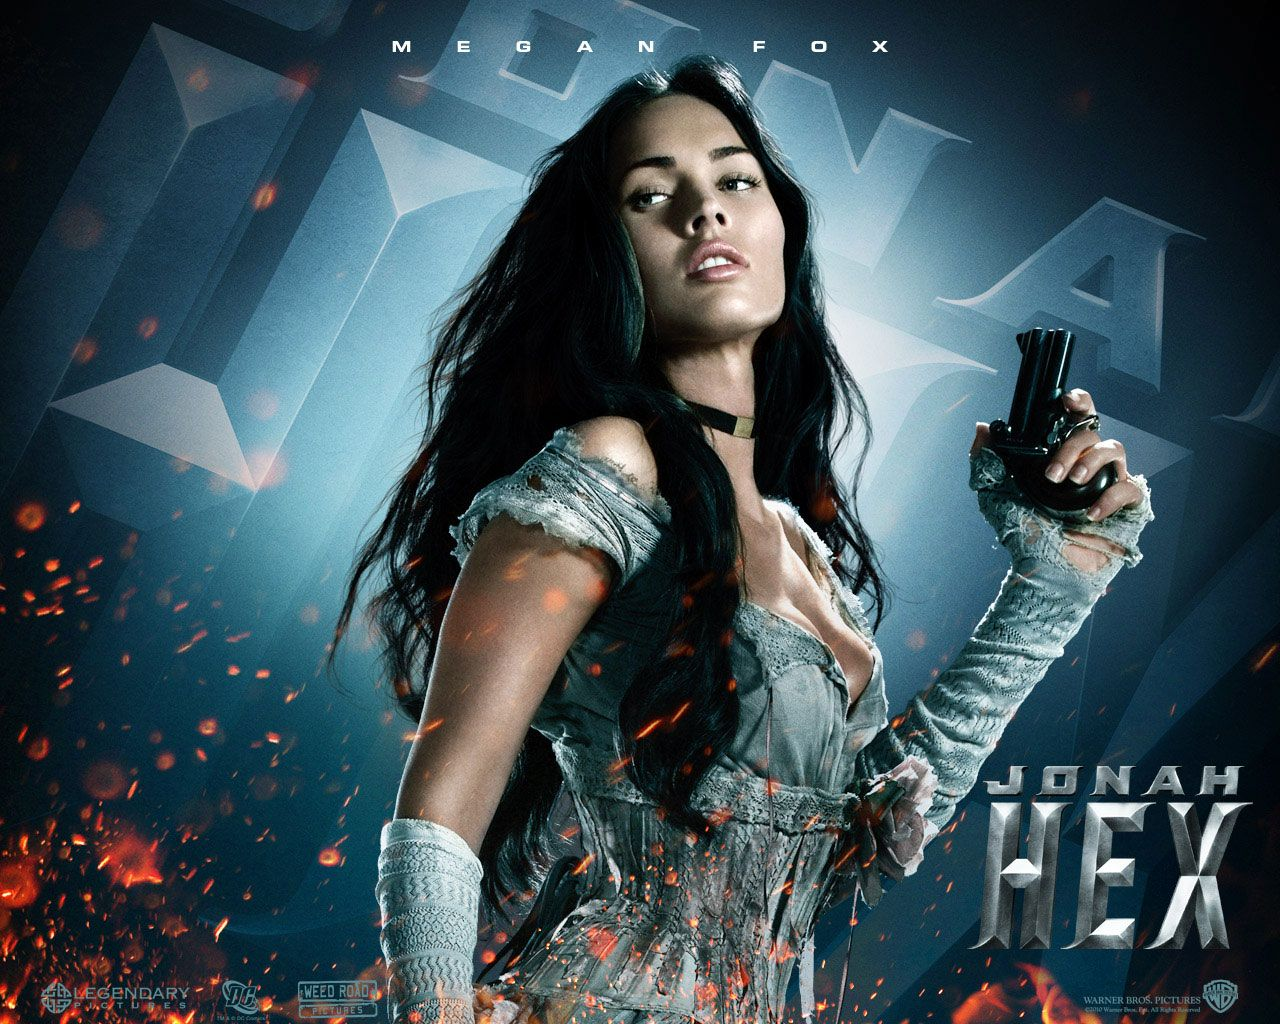 Jonah Hex Film Jonah Hex Movie Wallpapers Joblo Com